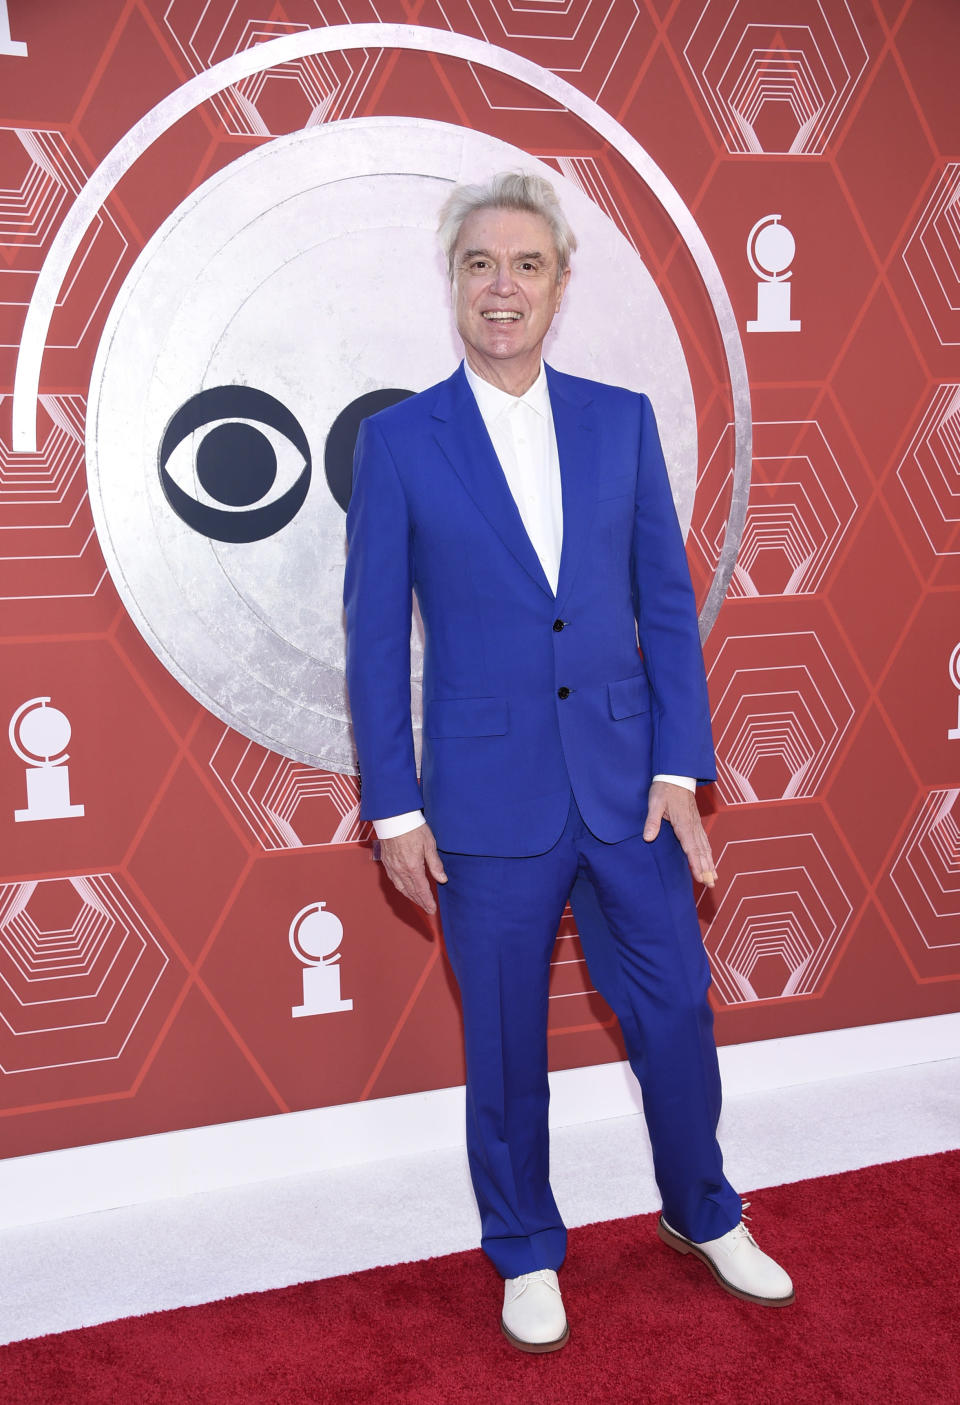 David Byrne arrives at the 74th annual Tony Awards at Winter Garden Theatre on Sunday, Sept. 26, 2021, in New York. (Photo by Evan Agostini/Invision/AP)